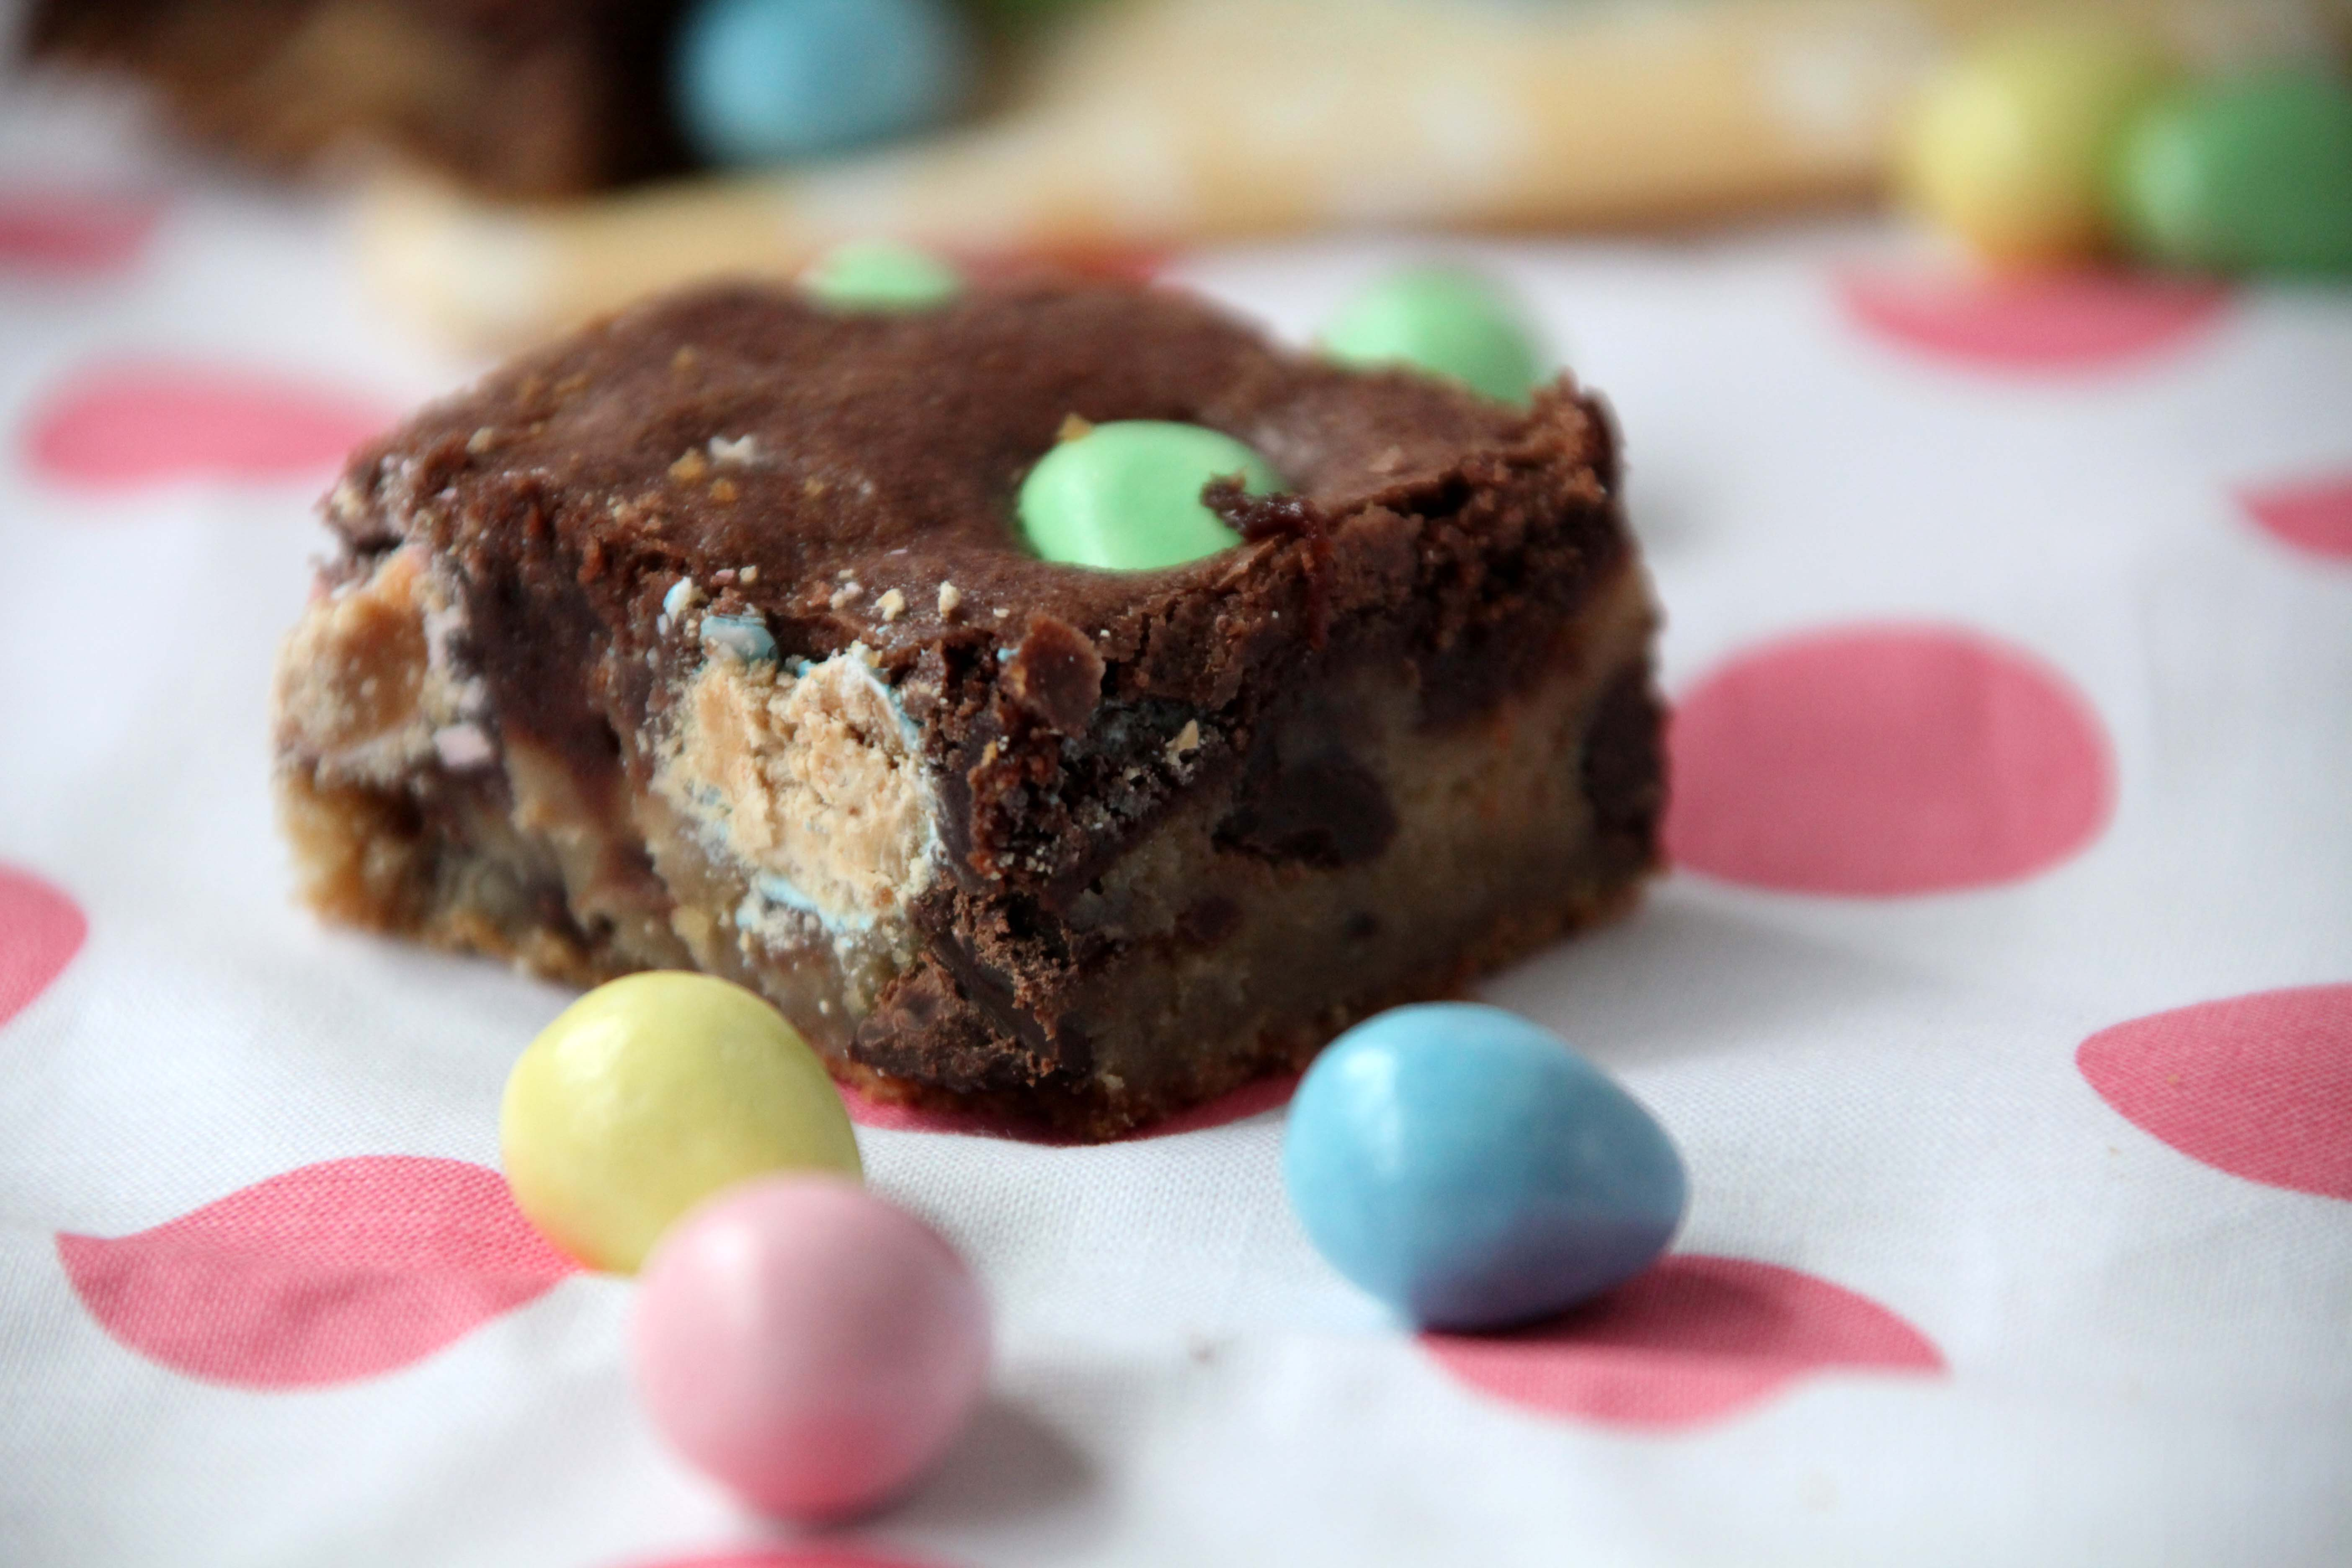 Chocolate Chip Cookie Reese's Pieces Brownies | The Pescetarian ...